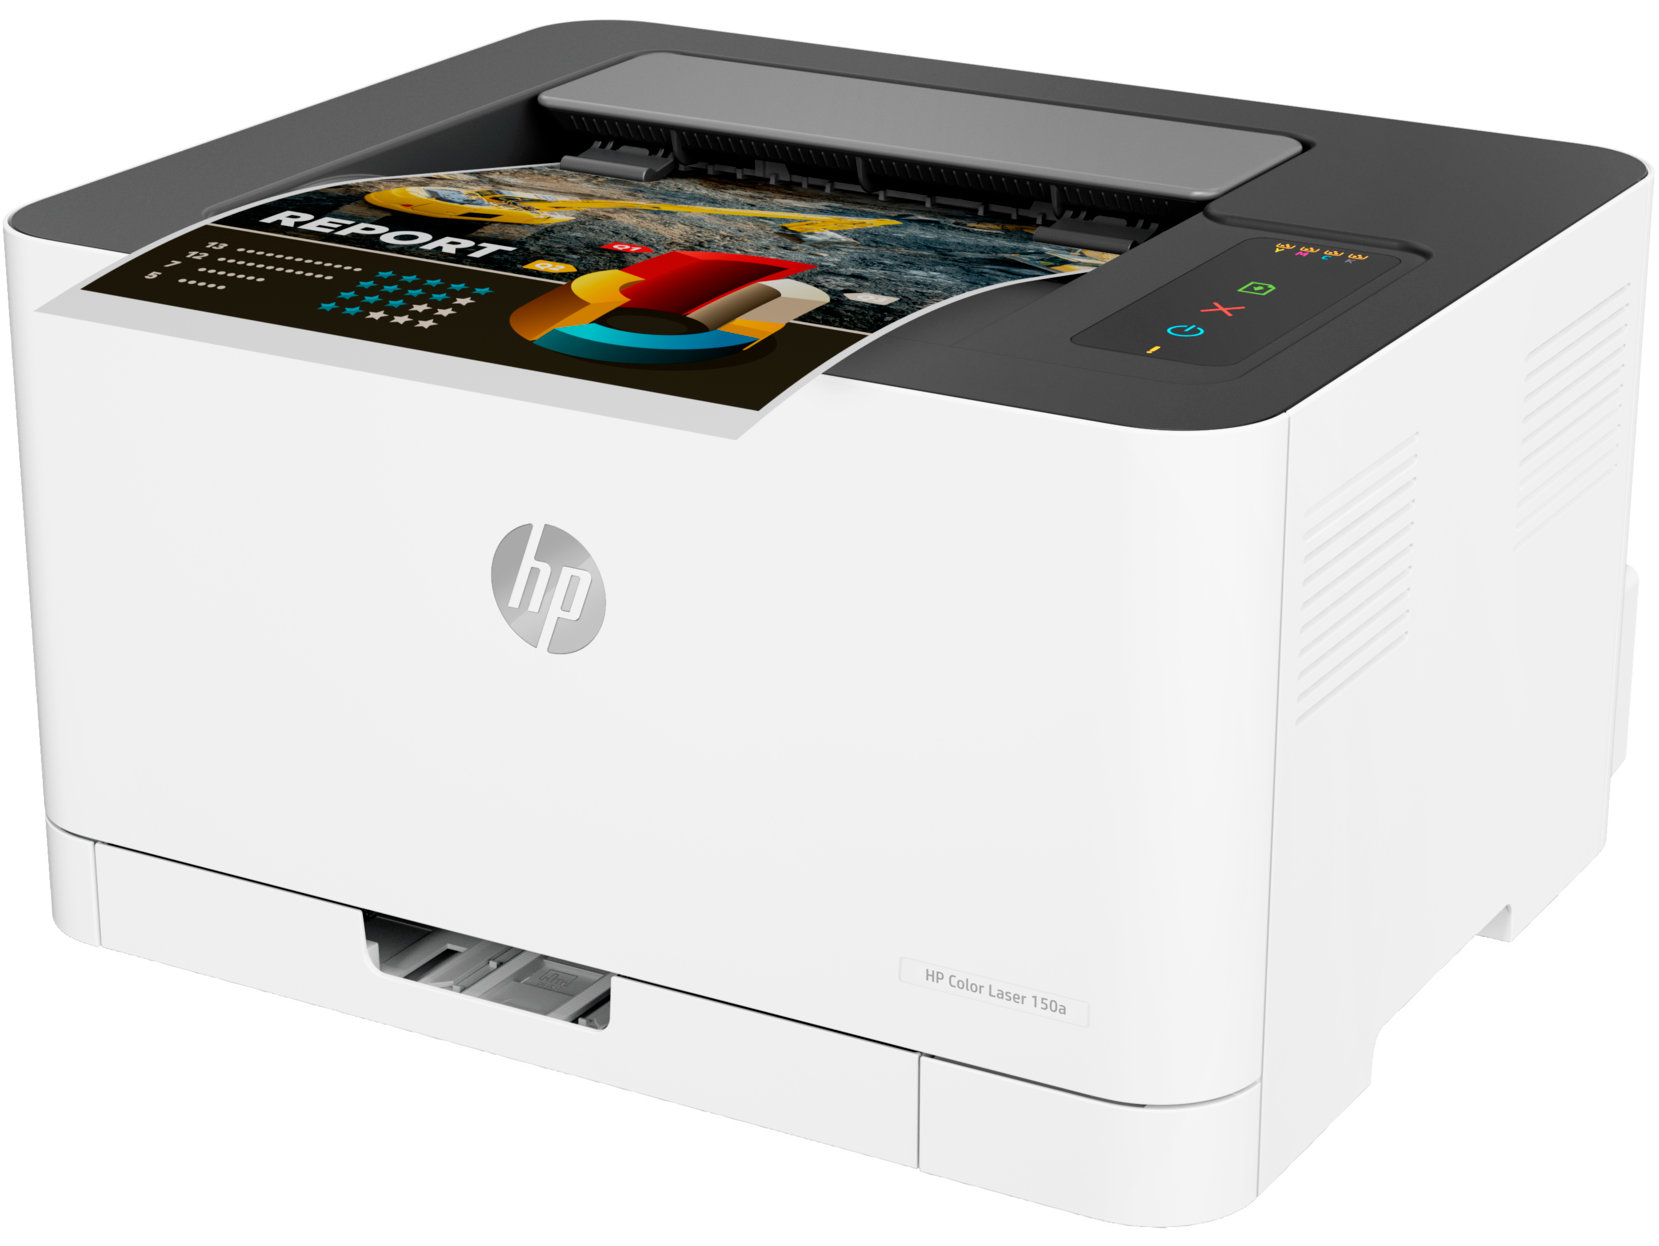 HP Color Laser 150a, 150nw fix firmware (chipless)